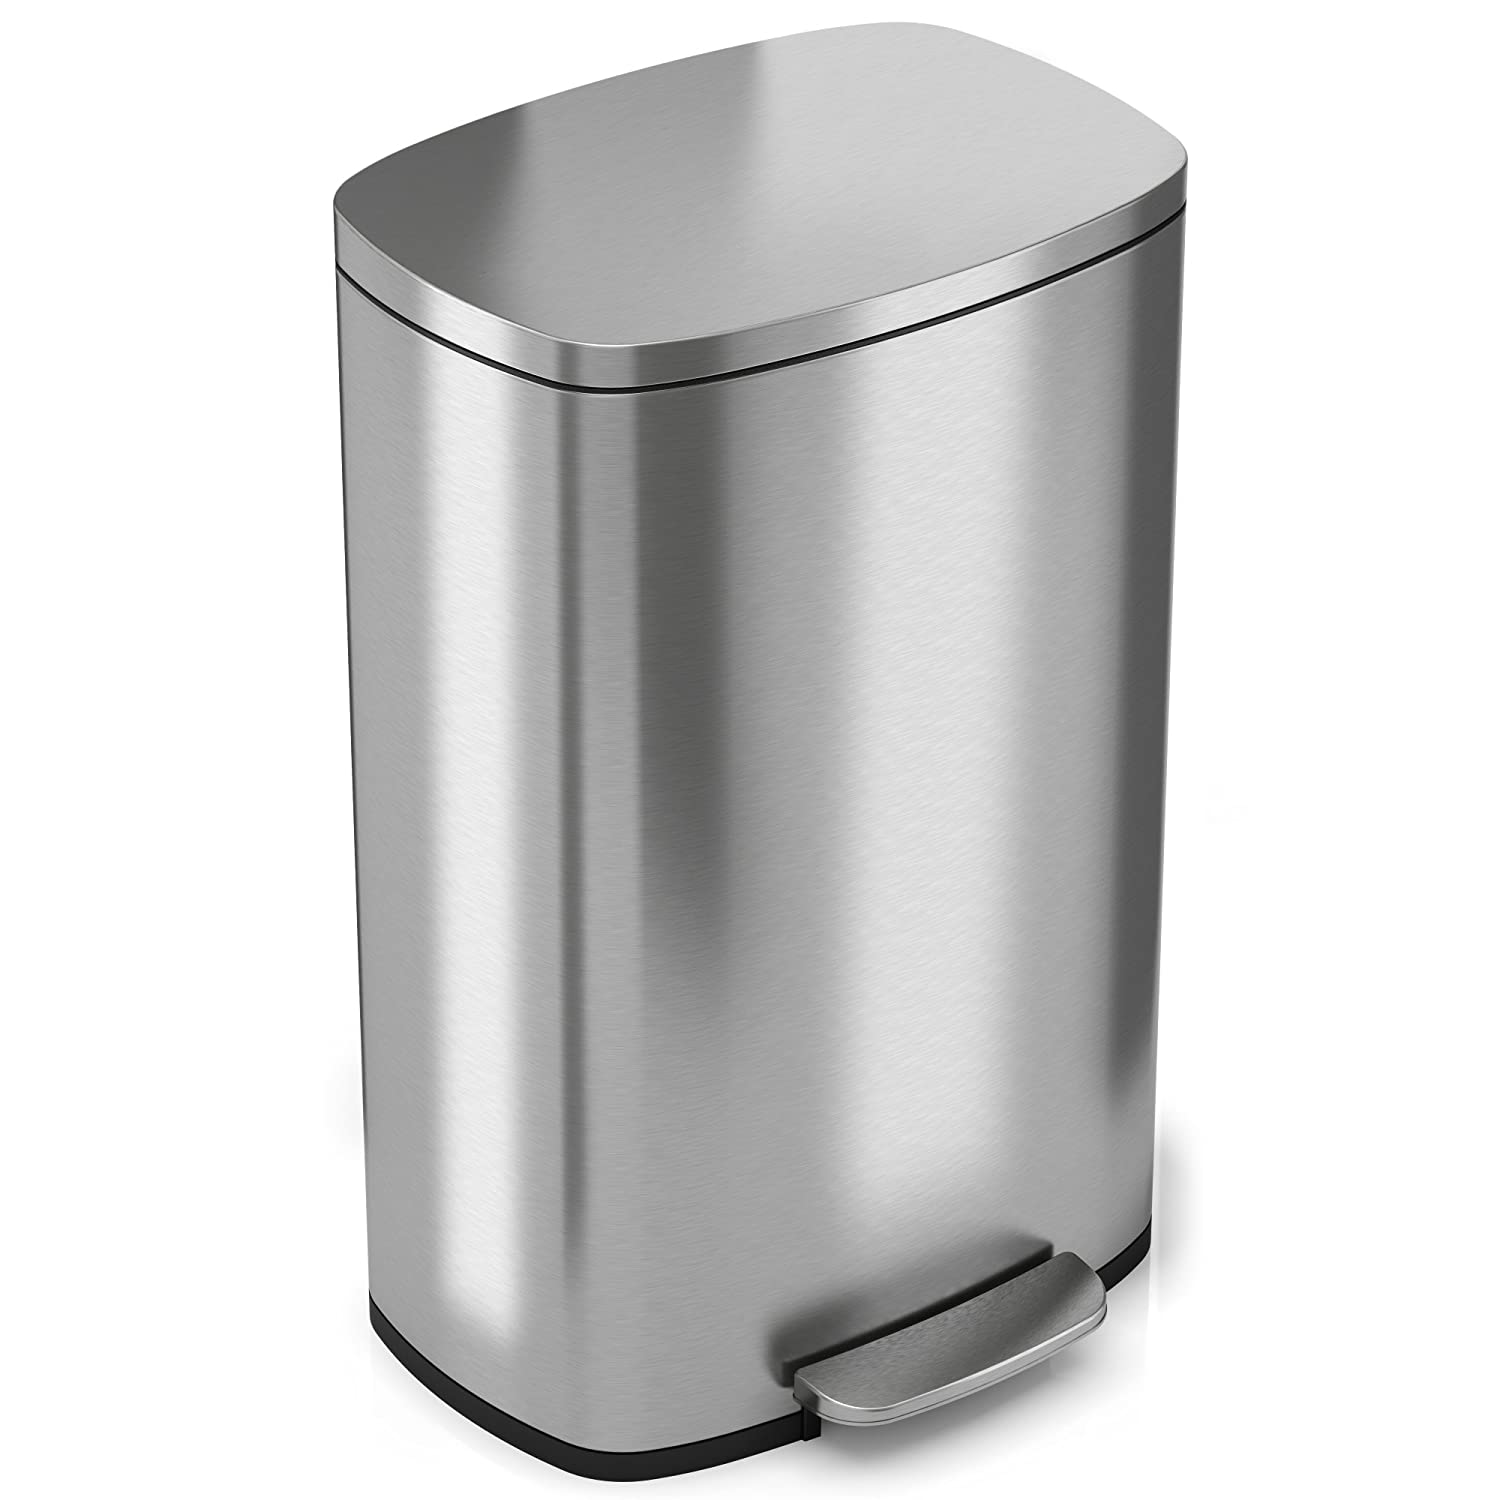 Design Kitchen Garbage Cans shop amazon com kitchen trash cans itouchless softstep 13 2 gallon stainless steel step can 50 liter pedal can